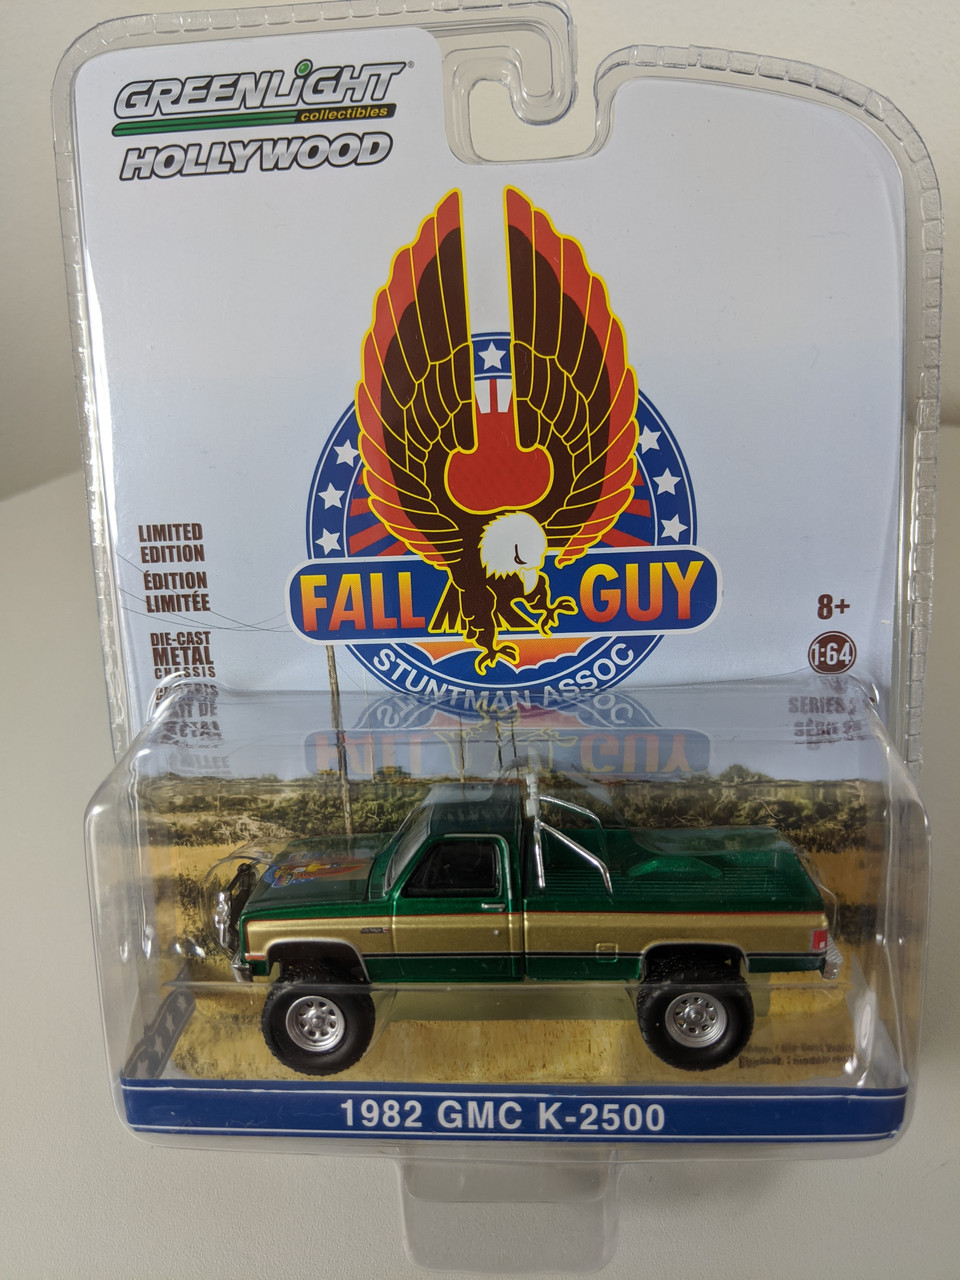 1 64 Fall Guy Stuntman Association 1982 Gmc K 2500 Green Machine Town And Country Toys